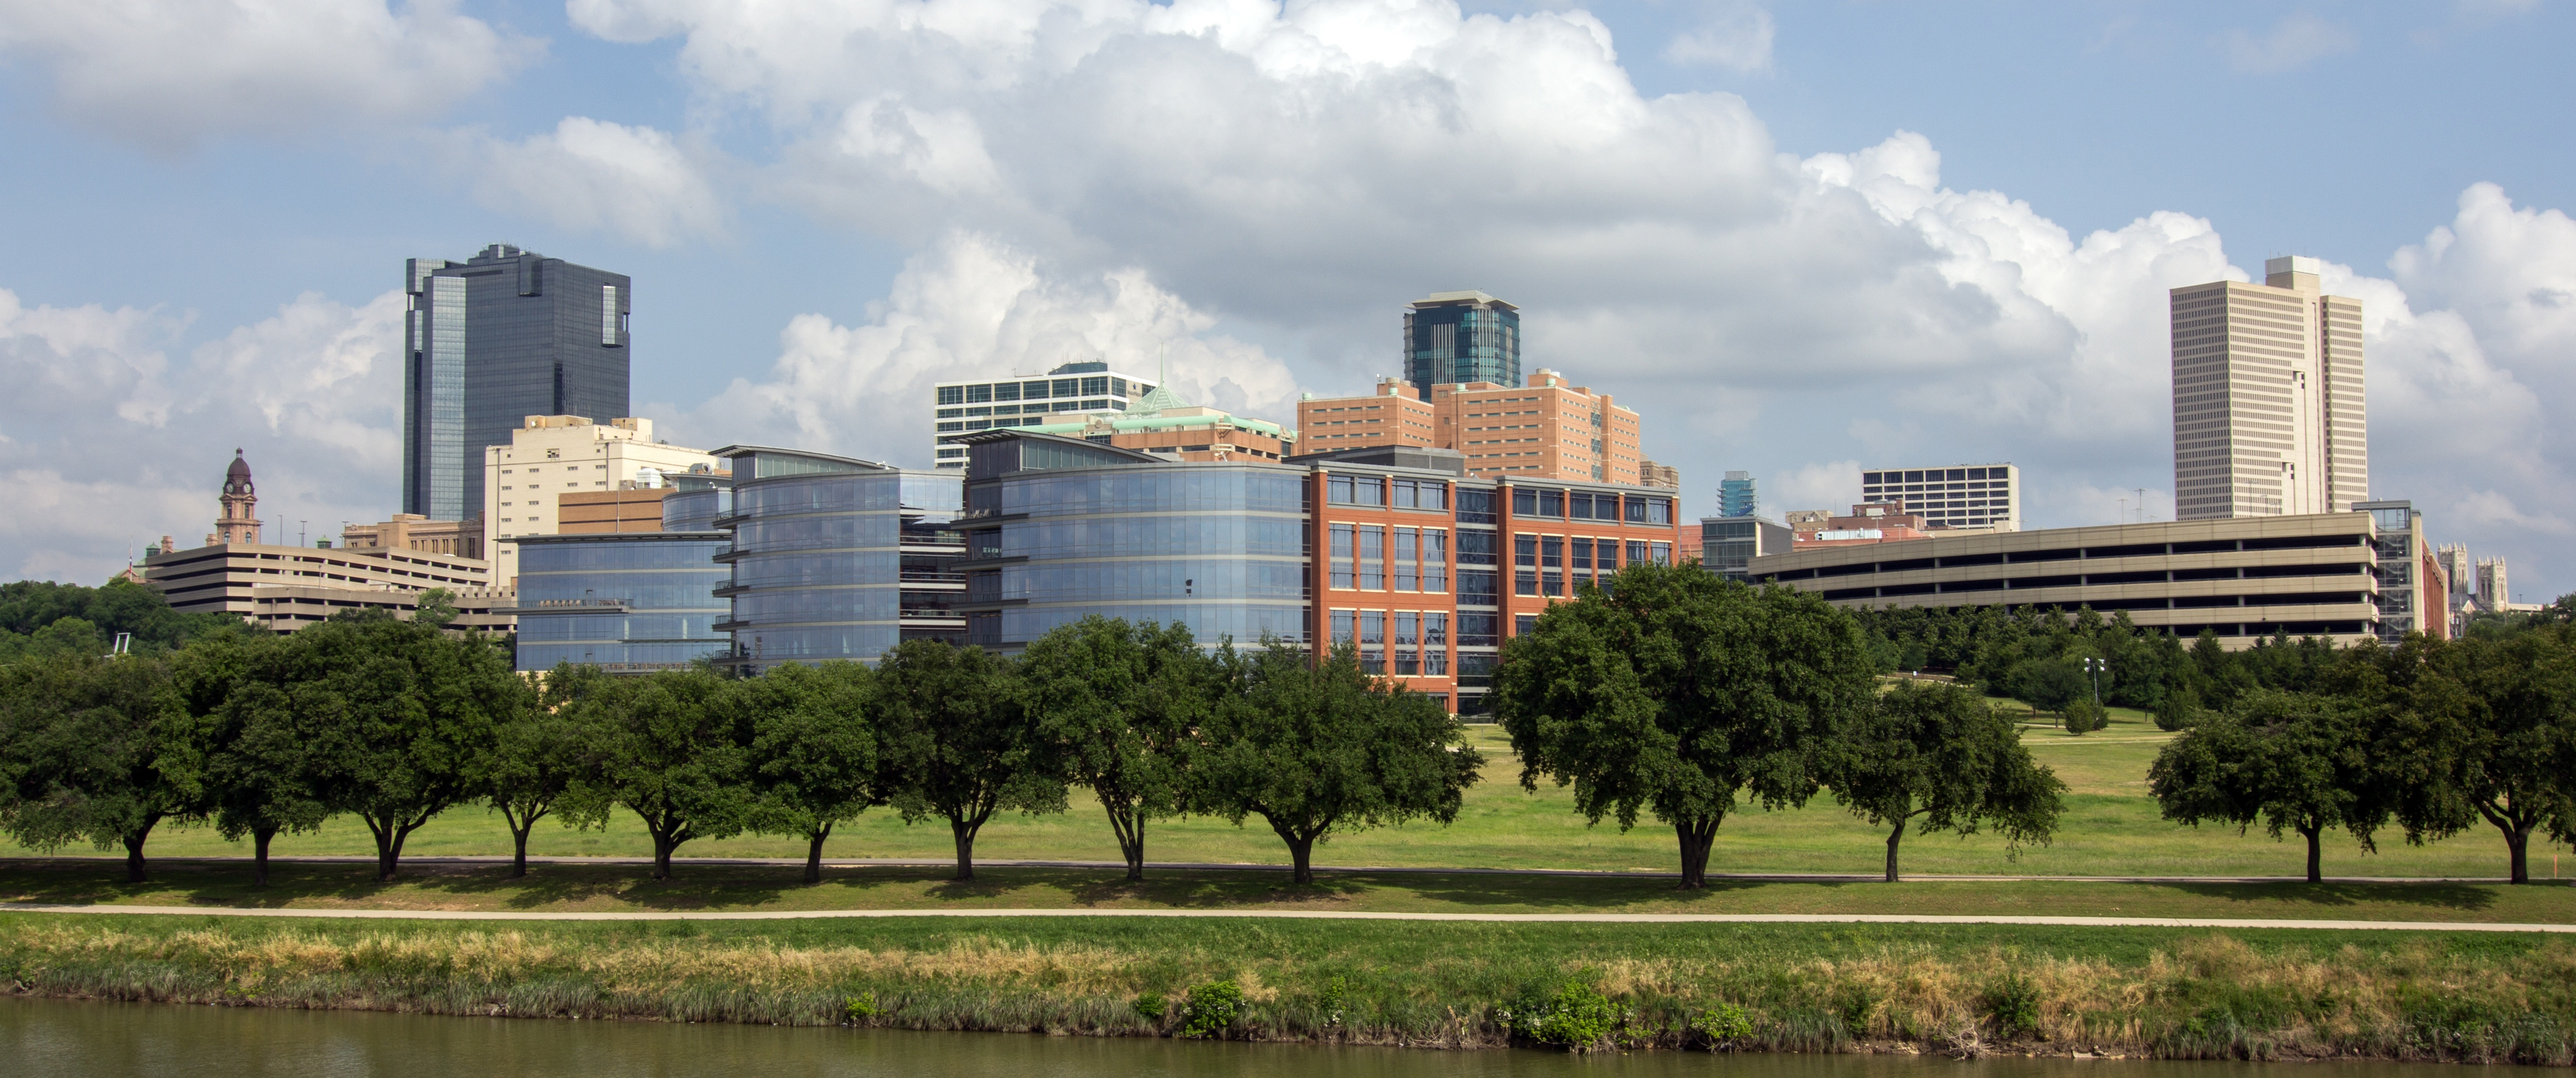 Fort Worth hoa management services